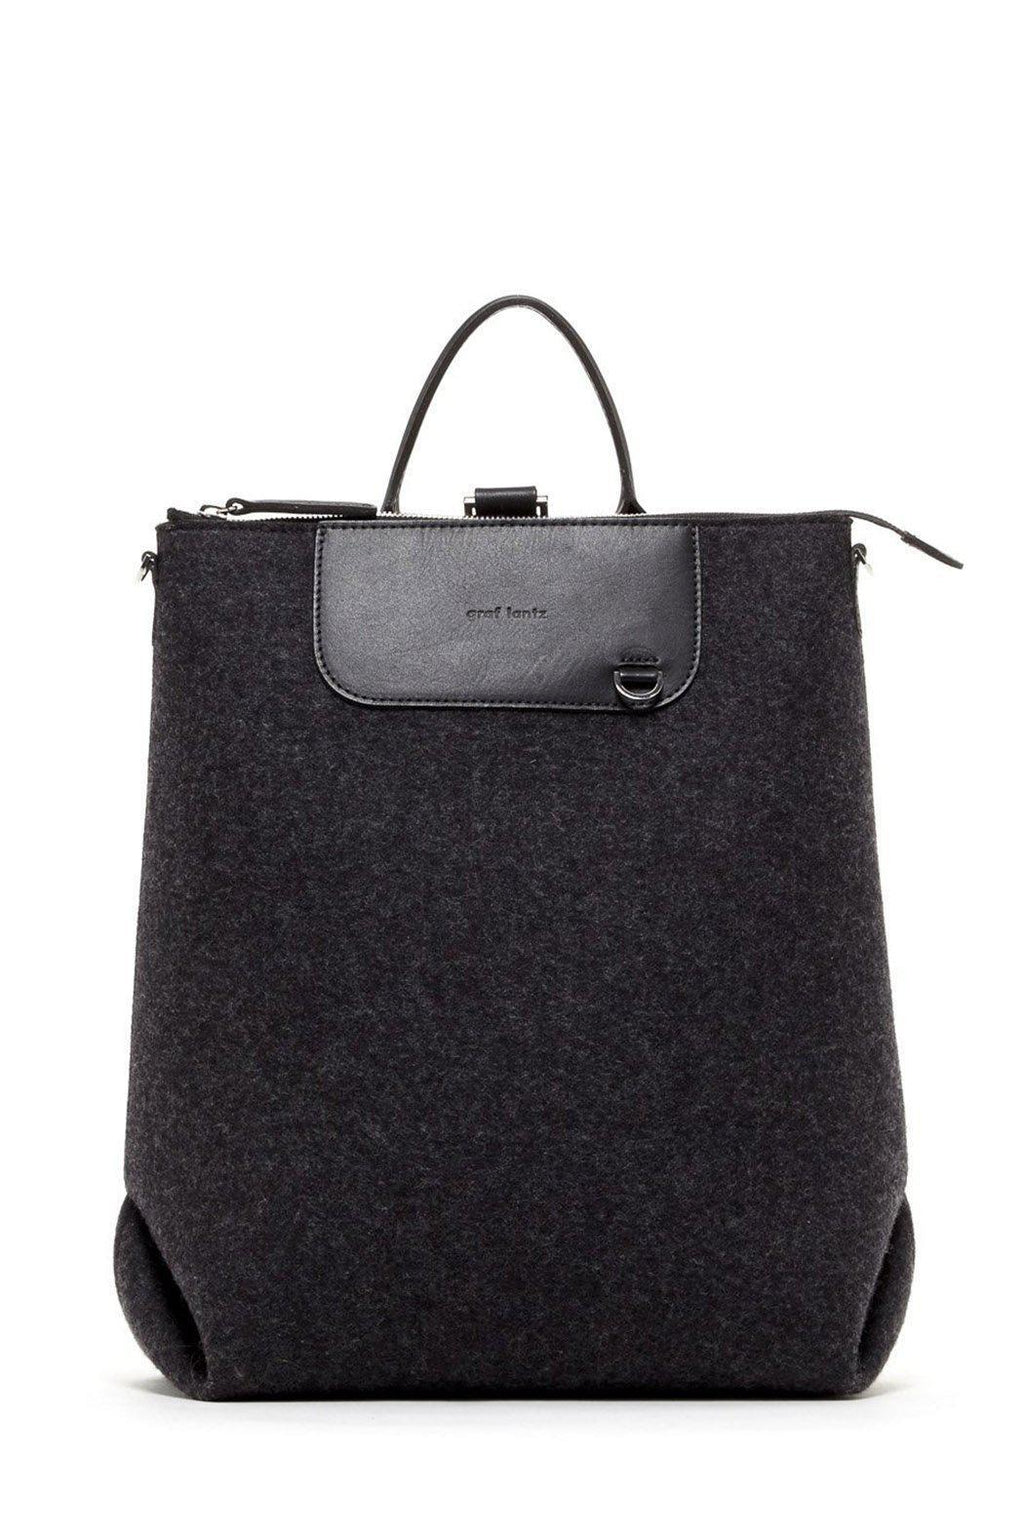 EcoVibe Style - Bedford Backpack,  | Charcoal Felt and Black Leather